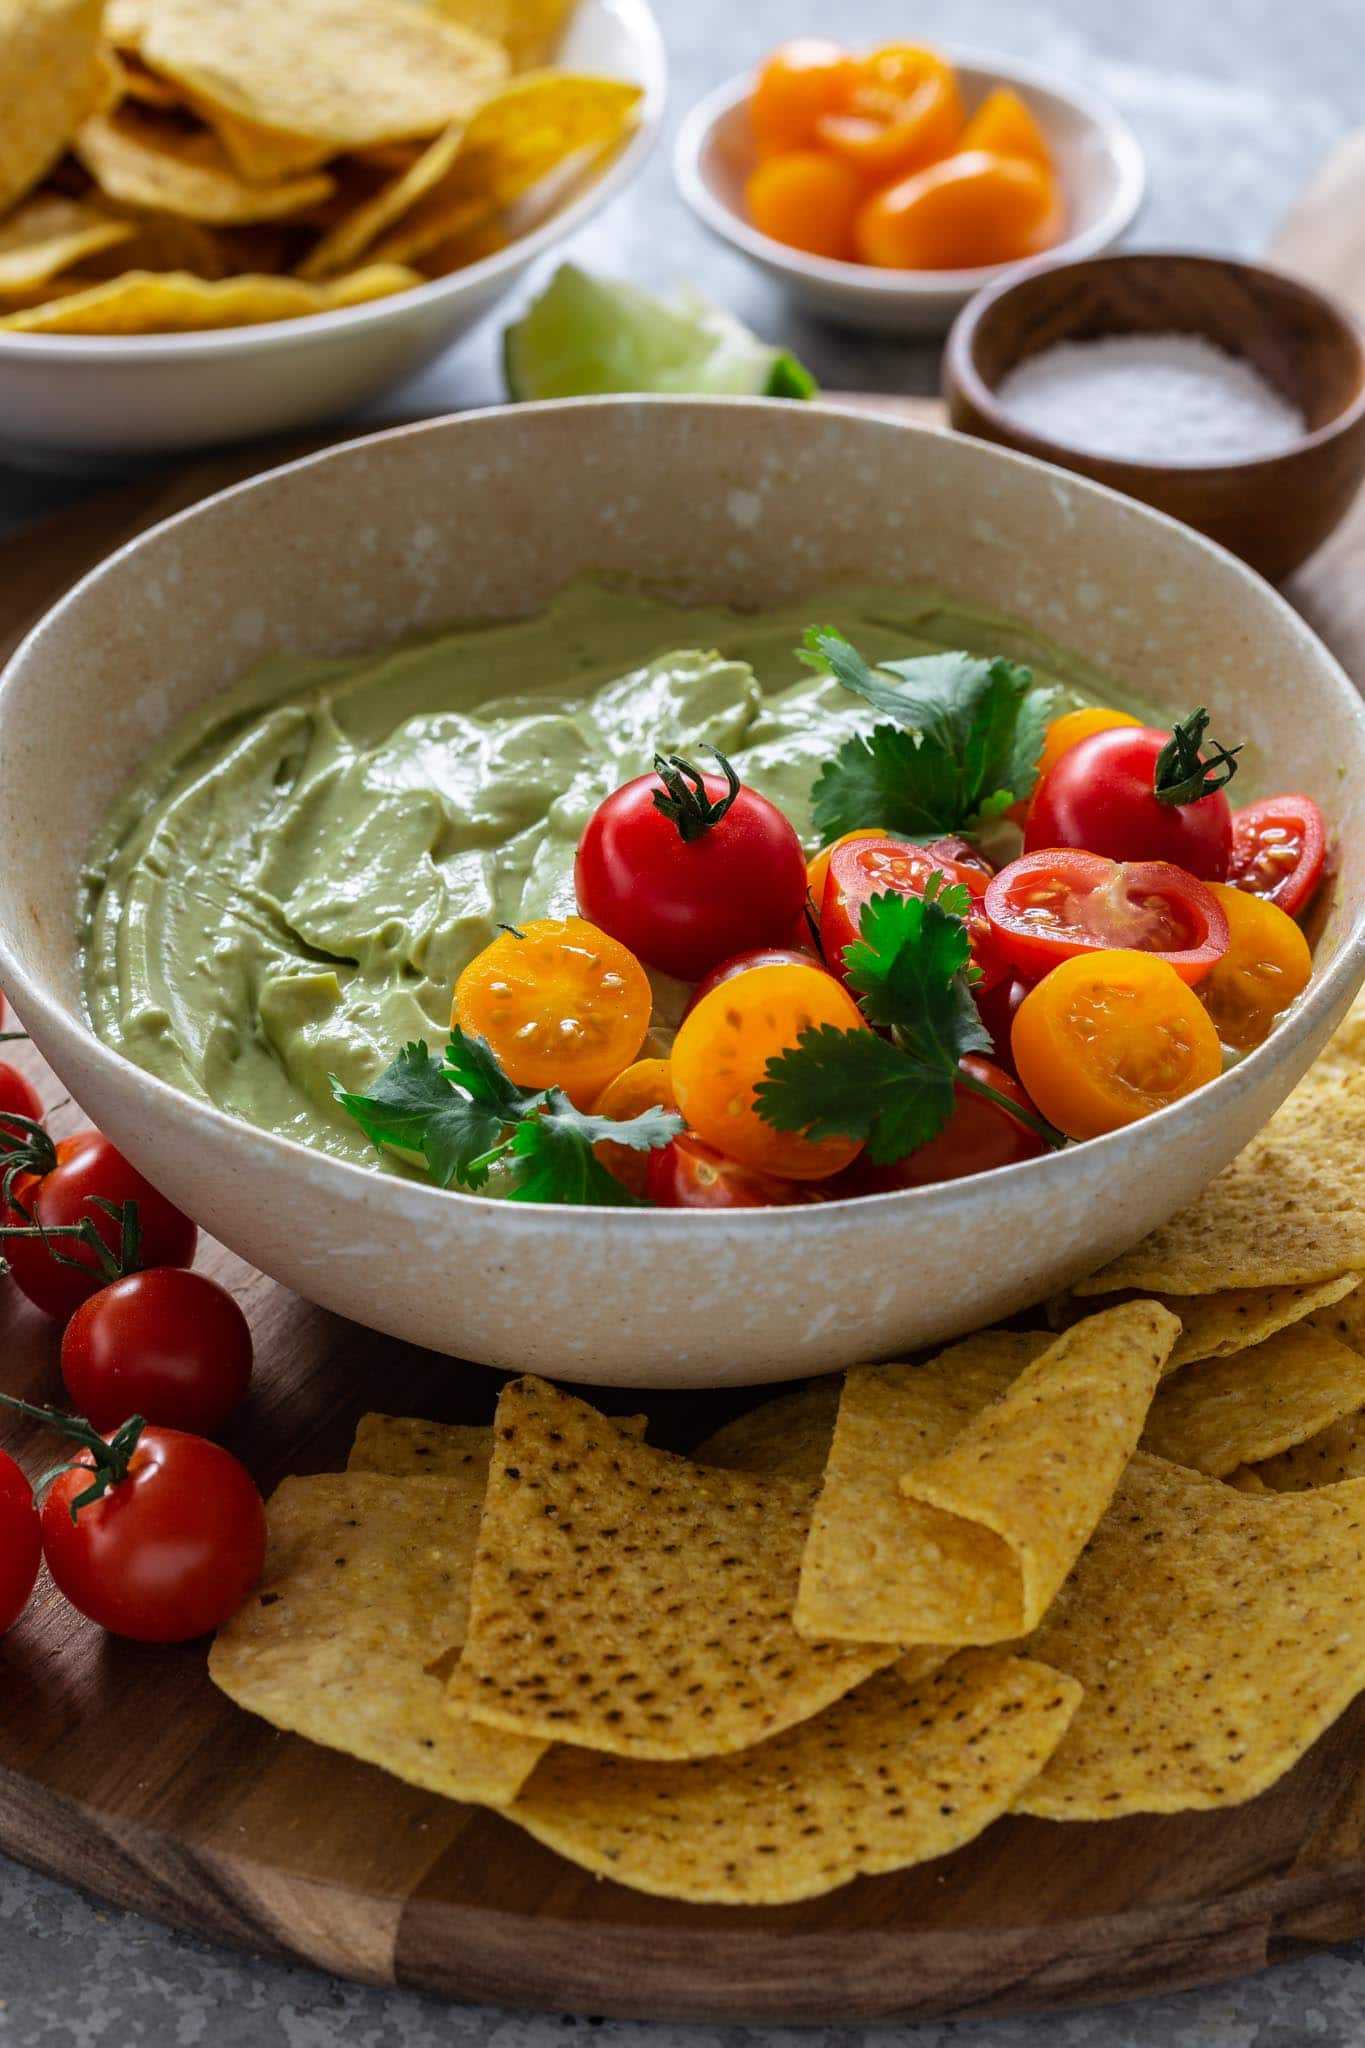 A bowl of creamy whipped avocado dip.